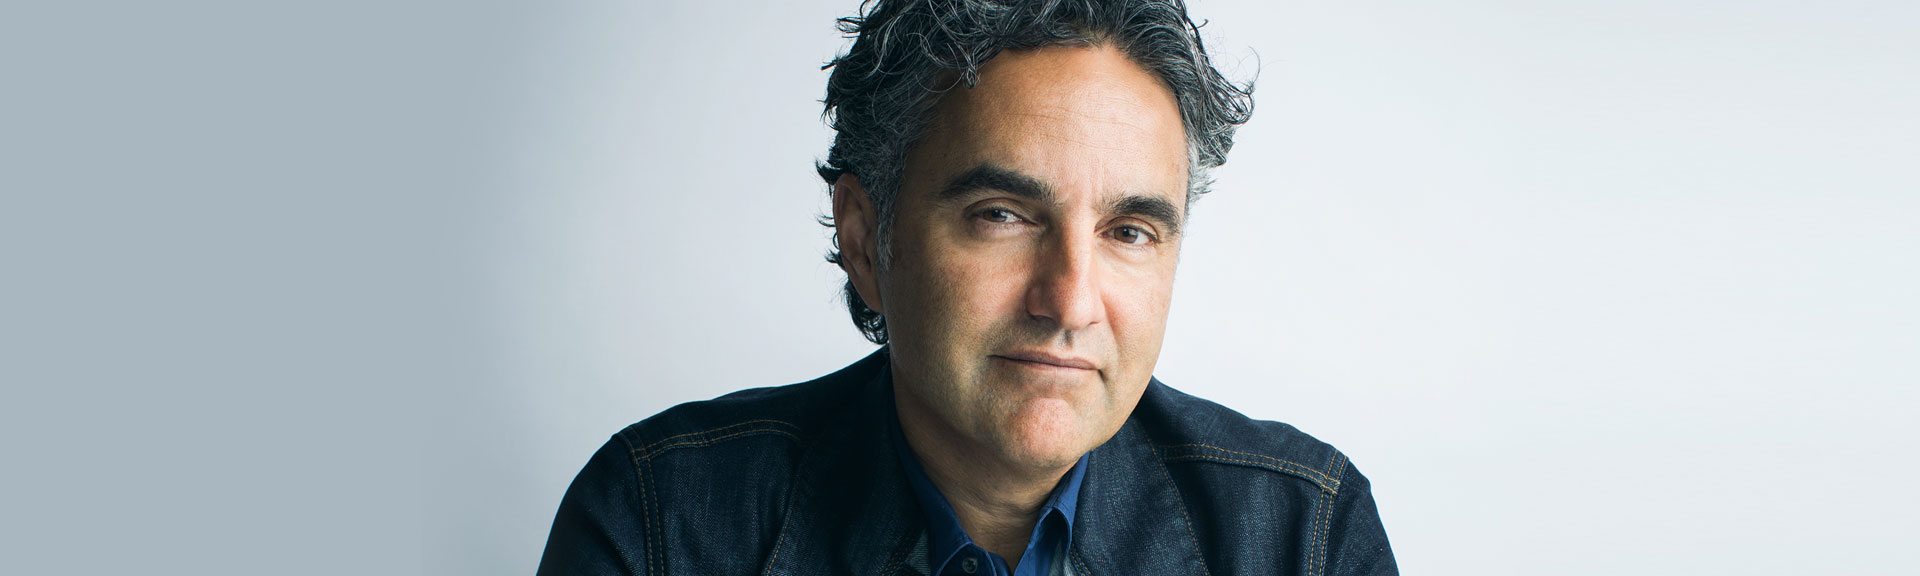 Dragon vs. Dragon! Bruce Croxon Challenges Kevin O'Leary on Climate Change <button>WATCH THE VIDEO</button>